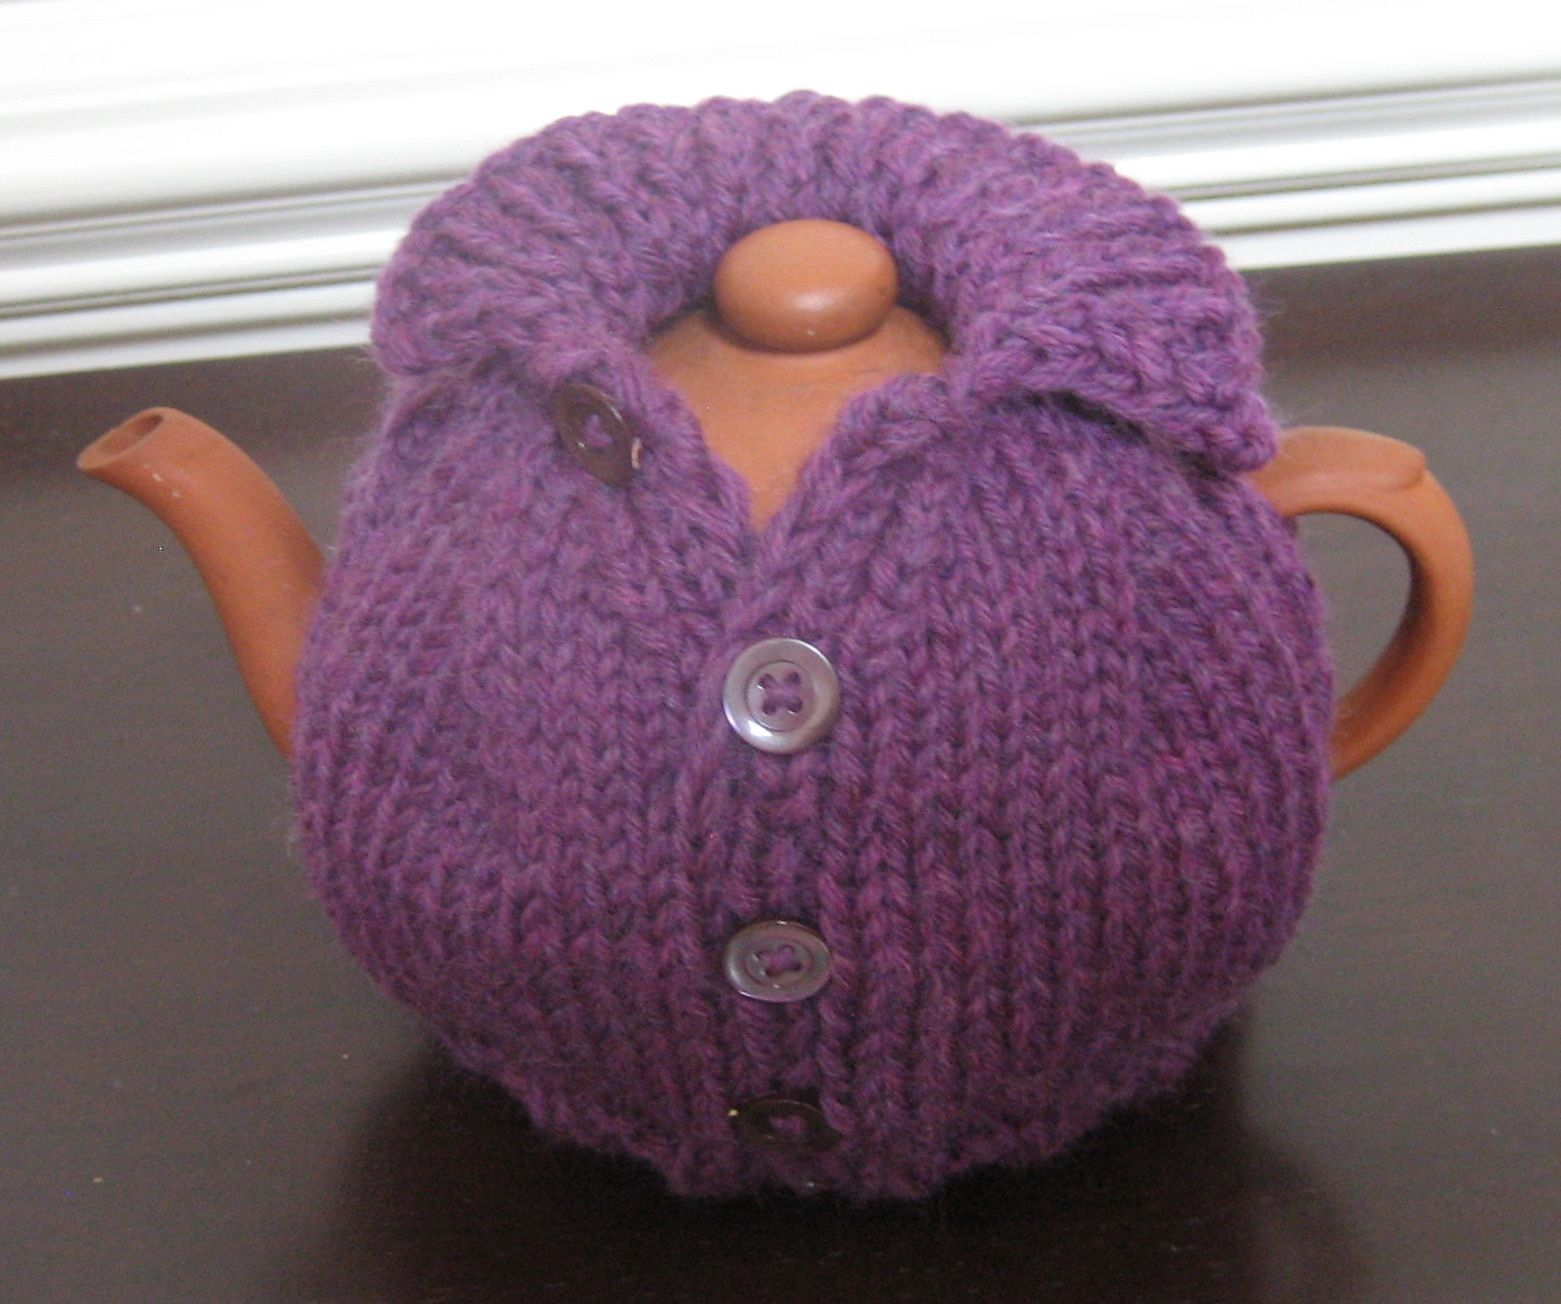 Knit patterns cosy tea cosies and tea cozy knit patterns tea cosiescoziestea bankloansurffo Choice Image